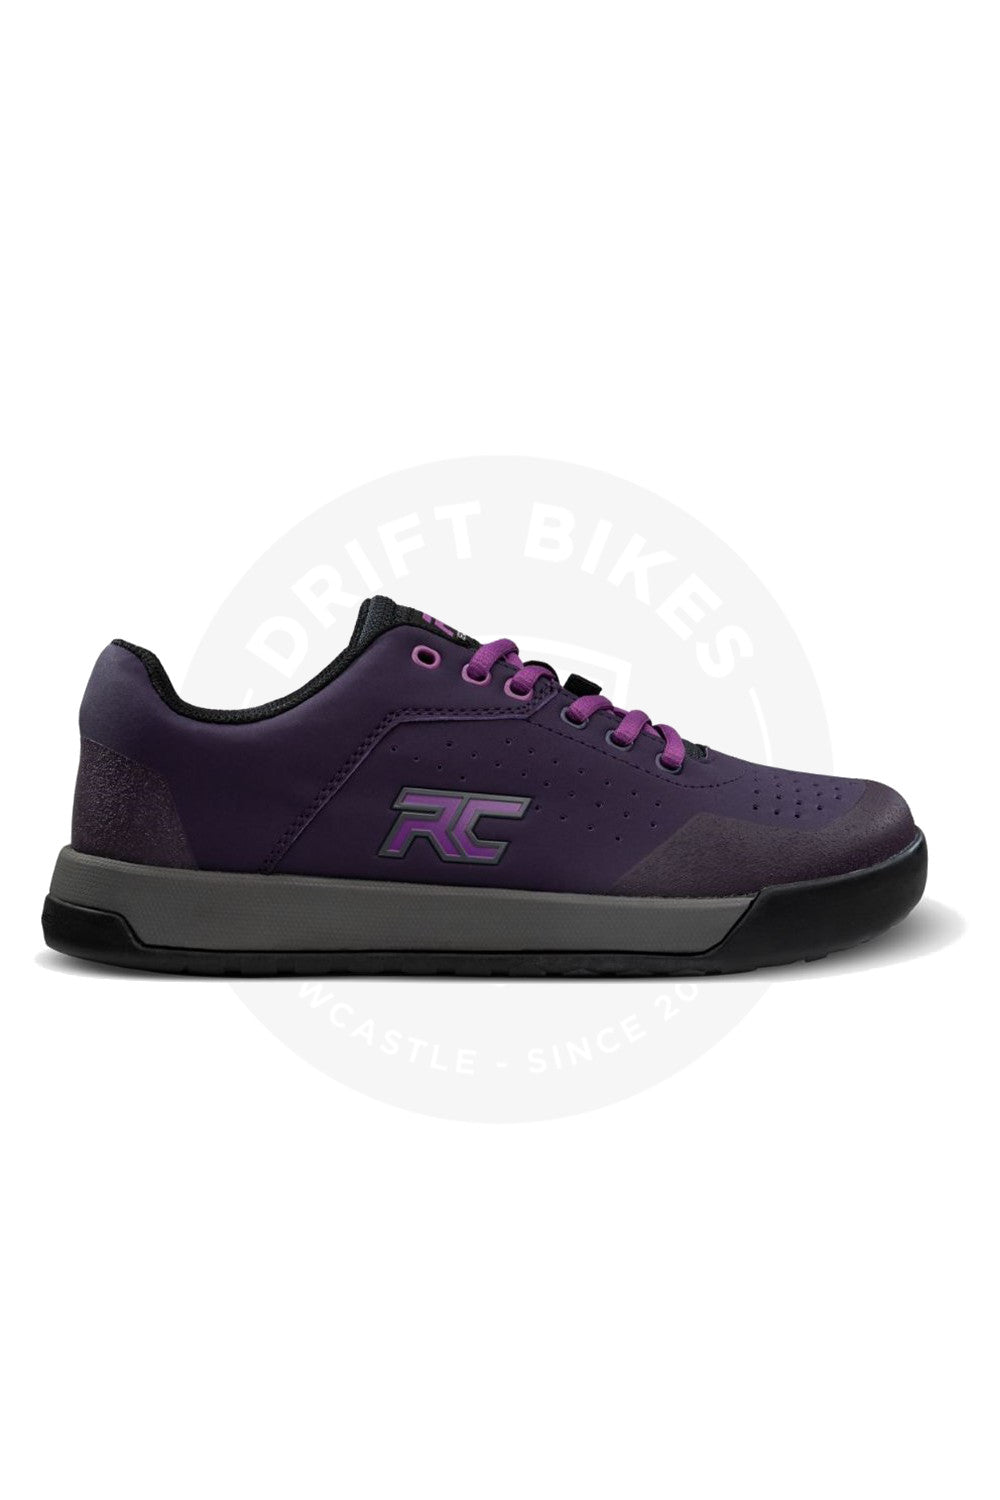 RIDE CONCEPTS HELLION WOMENS FLAT SHOE